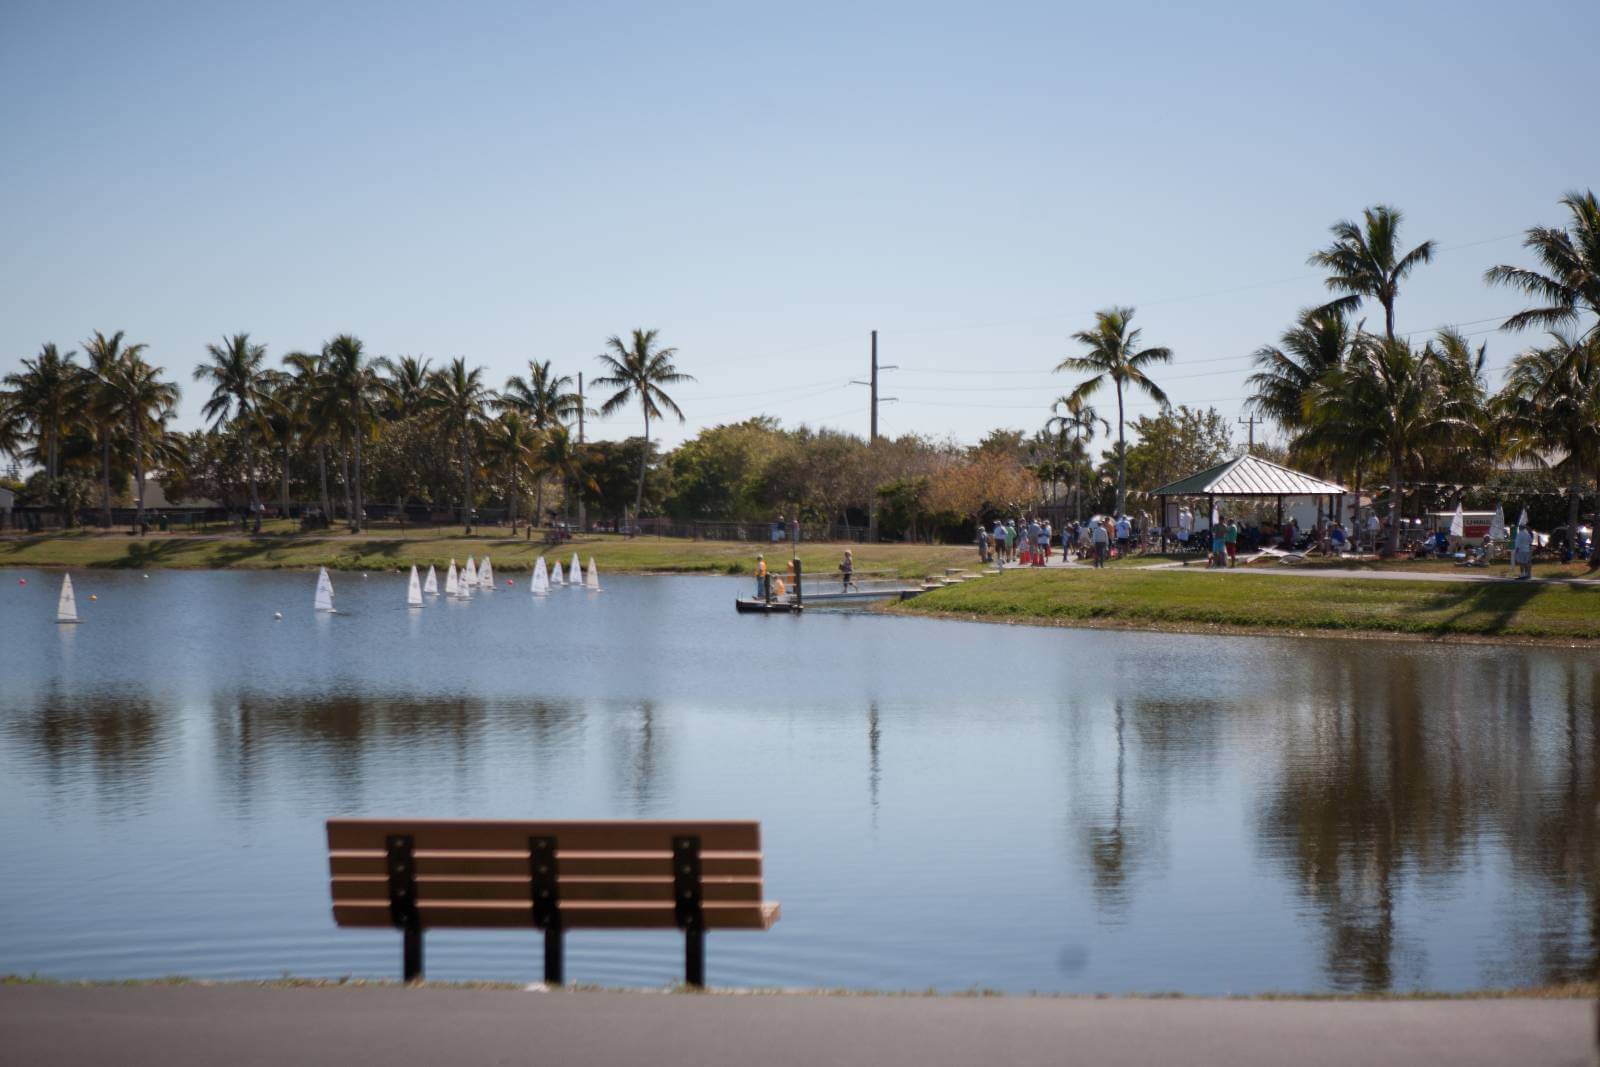 Lake at Mackle Park on Marco Island, Florida.